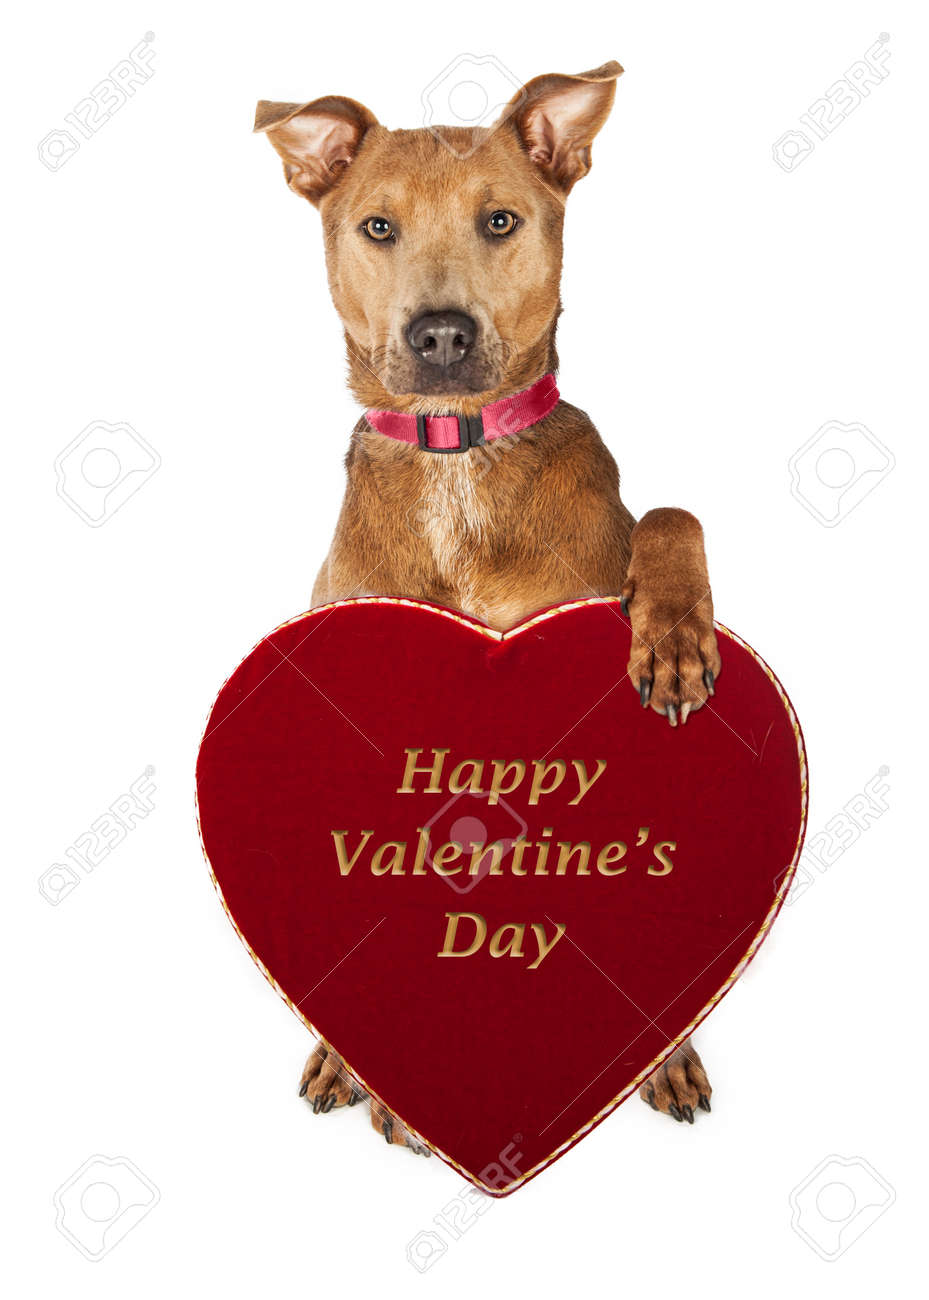 Adorable Large Mixed Breed Dog Holding A Happy Valentine S Day